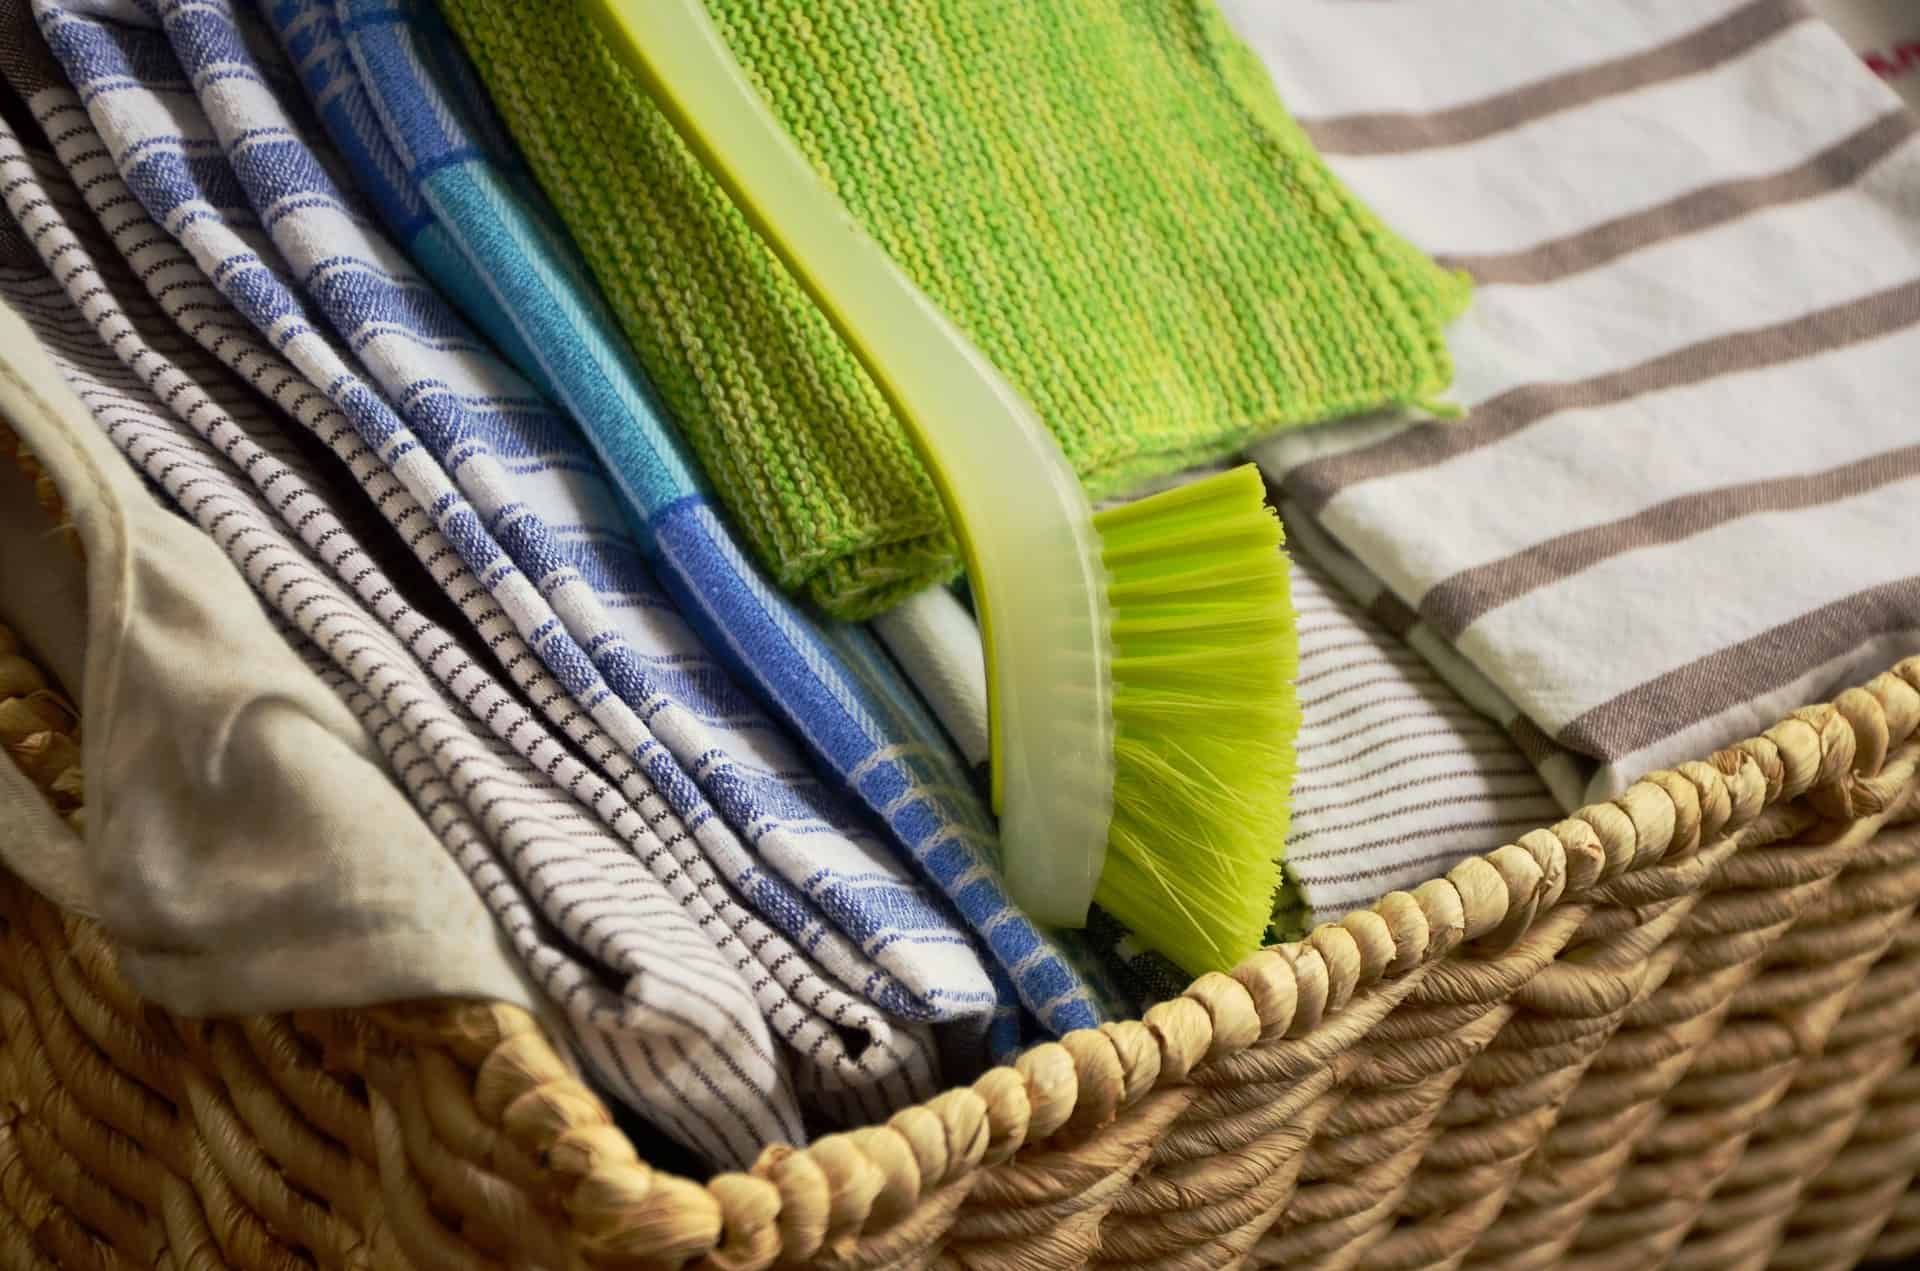 wicker basket full of folded up towels